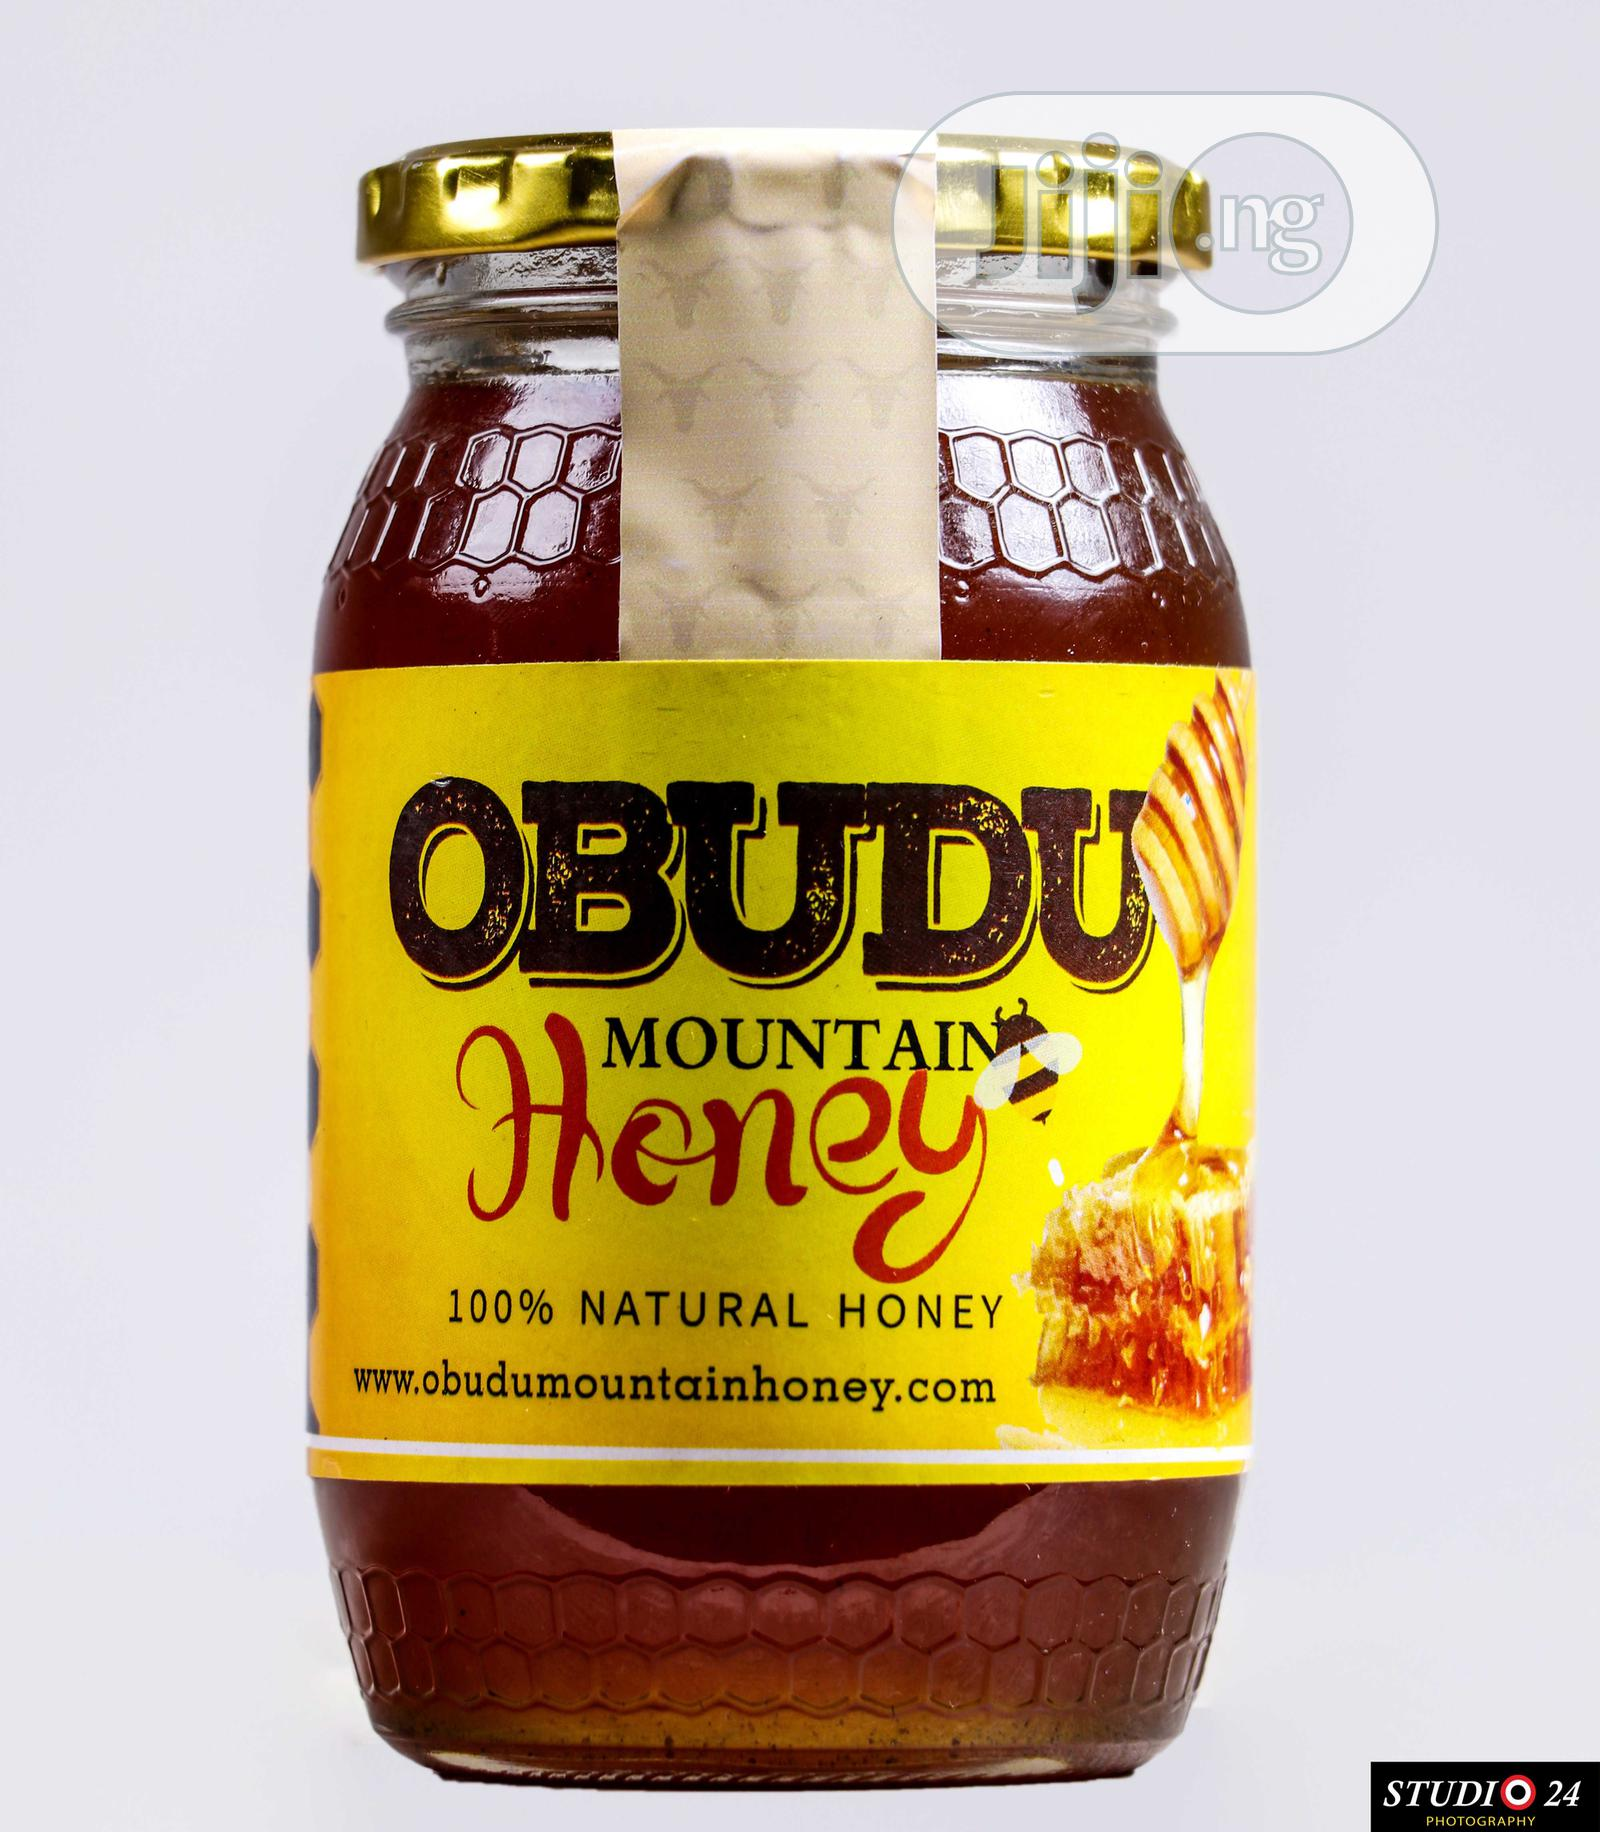 Obudu Mountain Honey